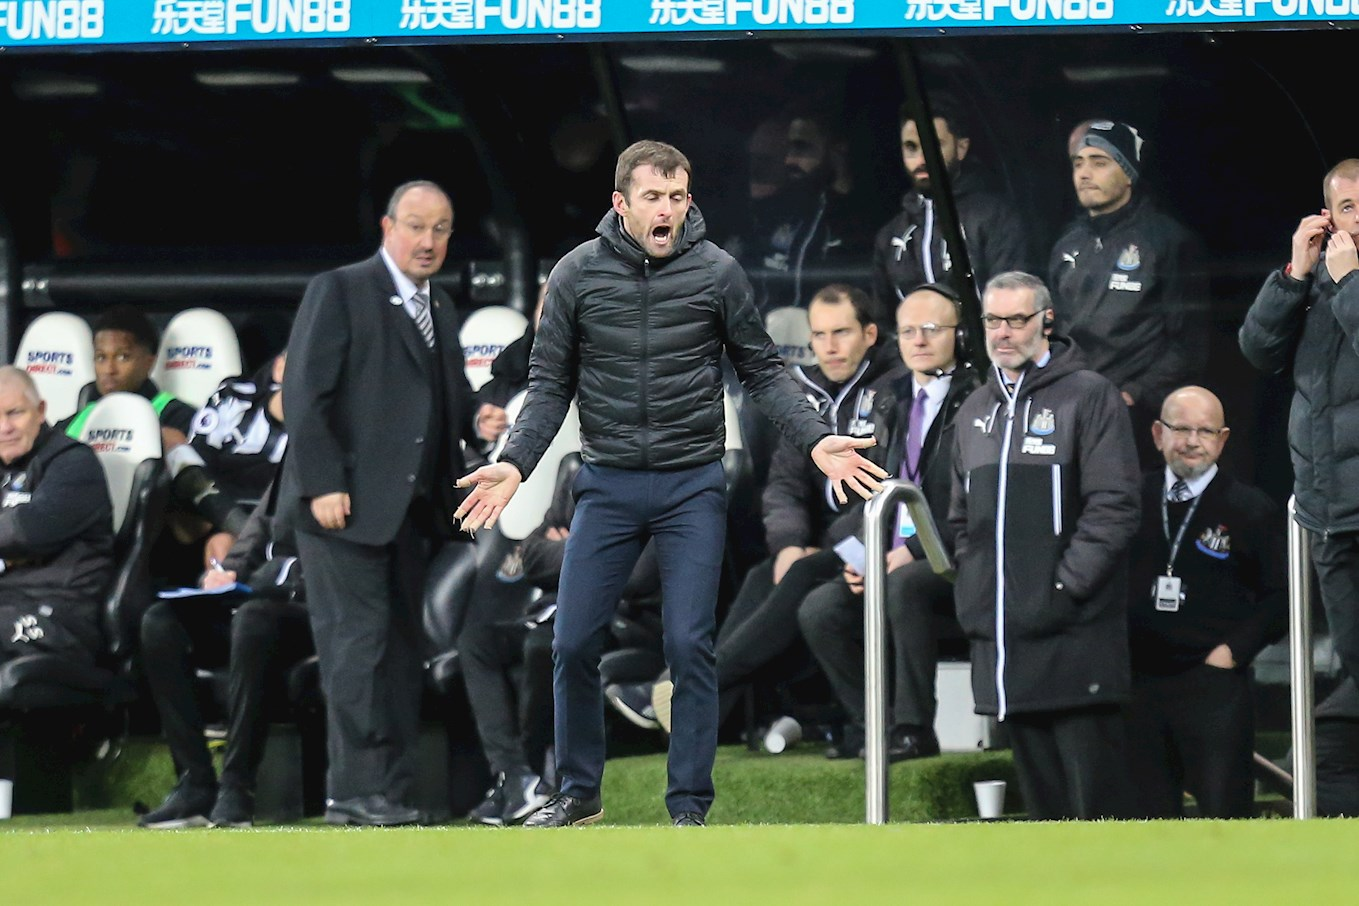 Hatters boss Nathan Jones came up against Newcastle United's Champions League-winning manager Rafa Benitez, left, on Saturday